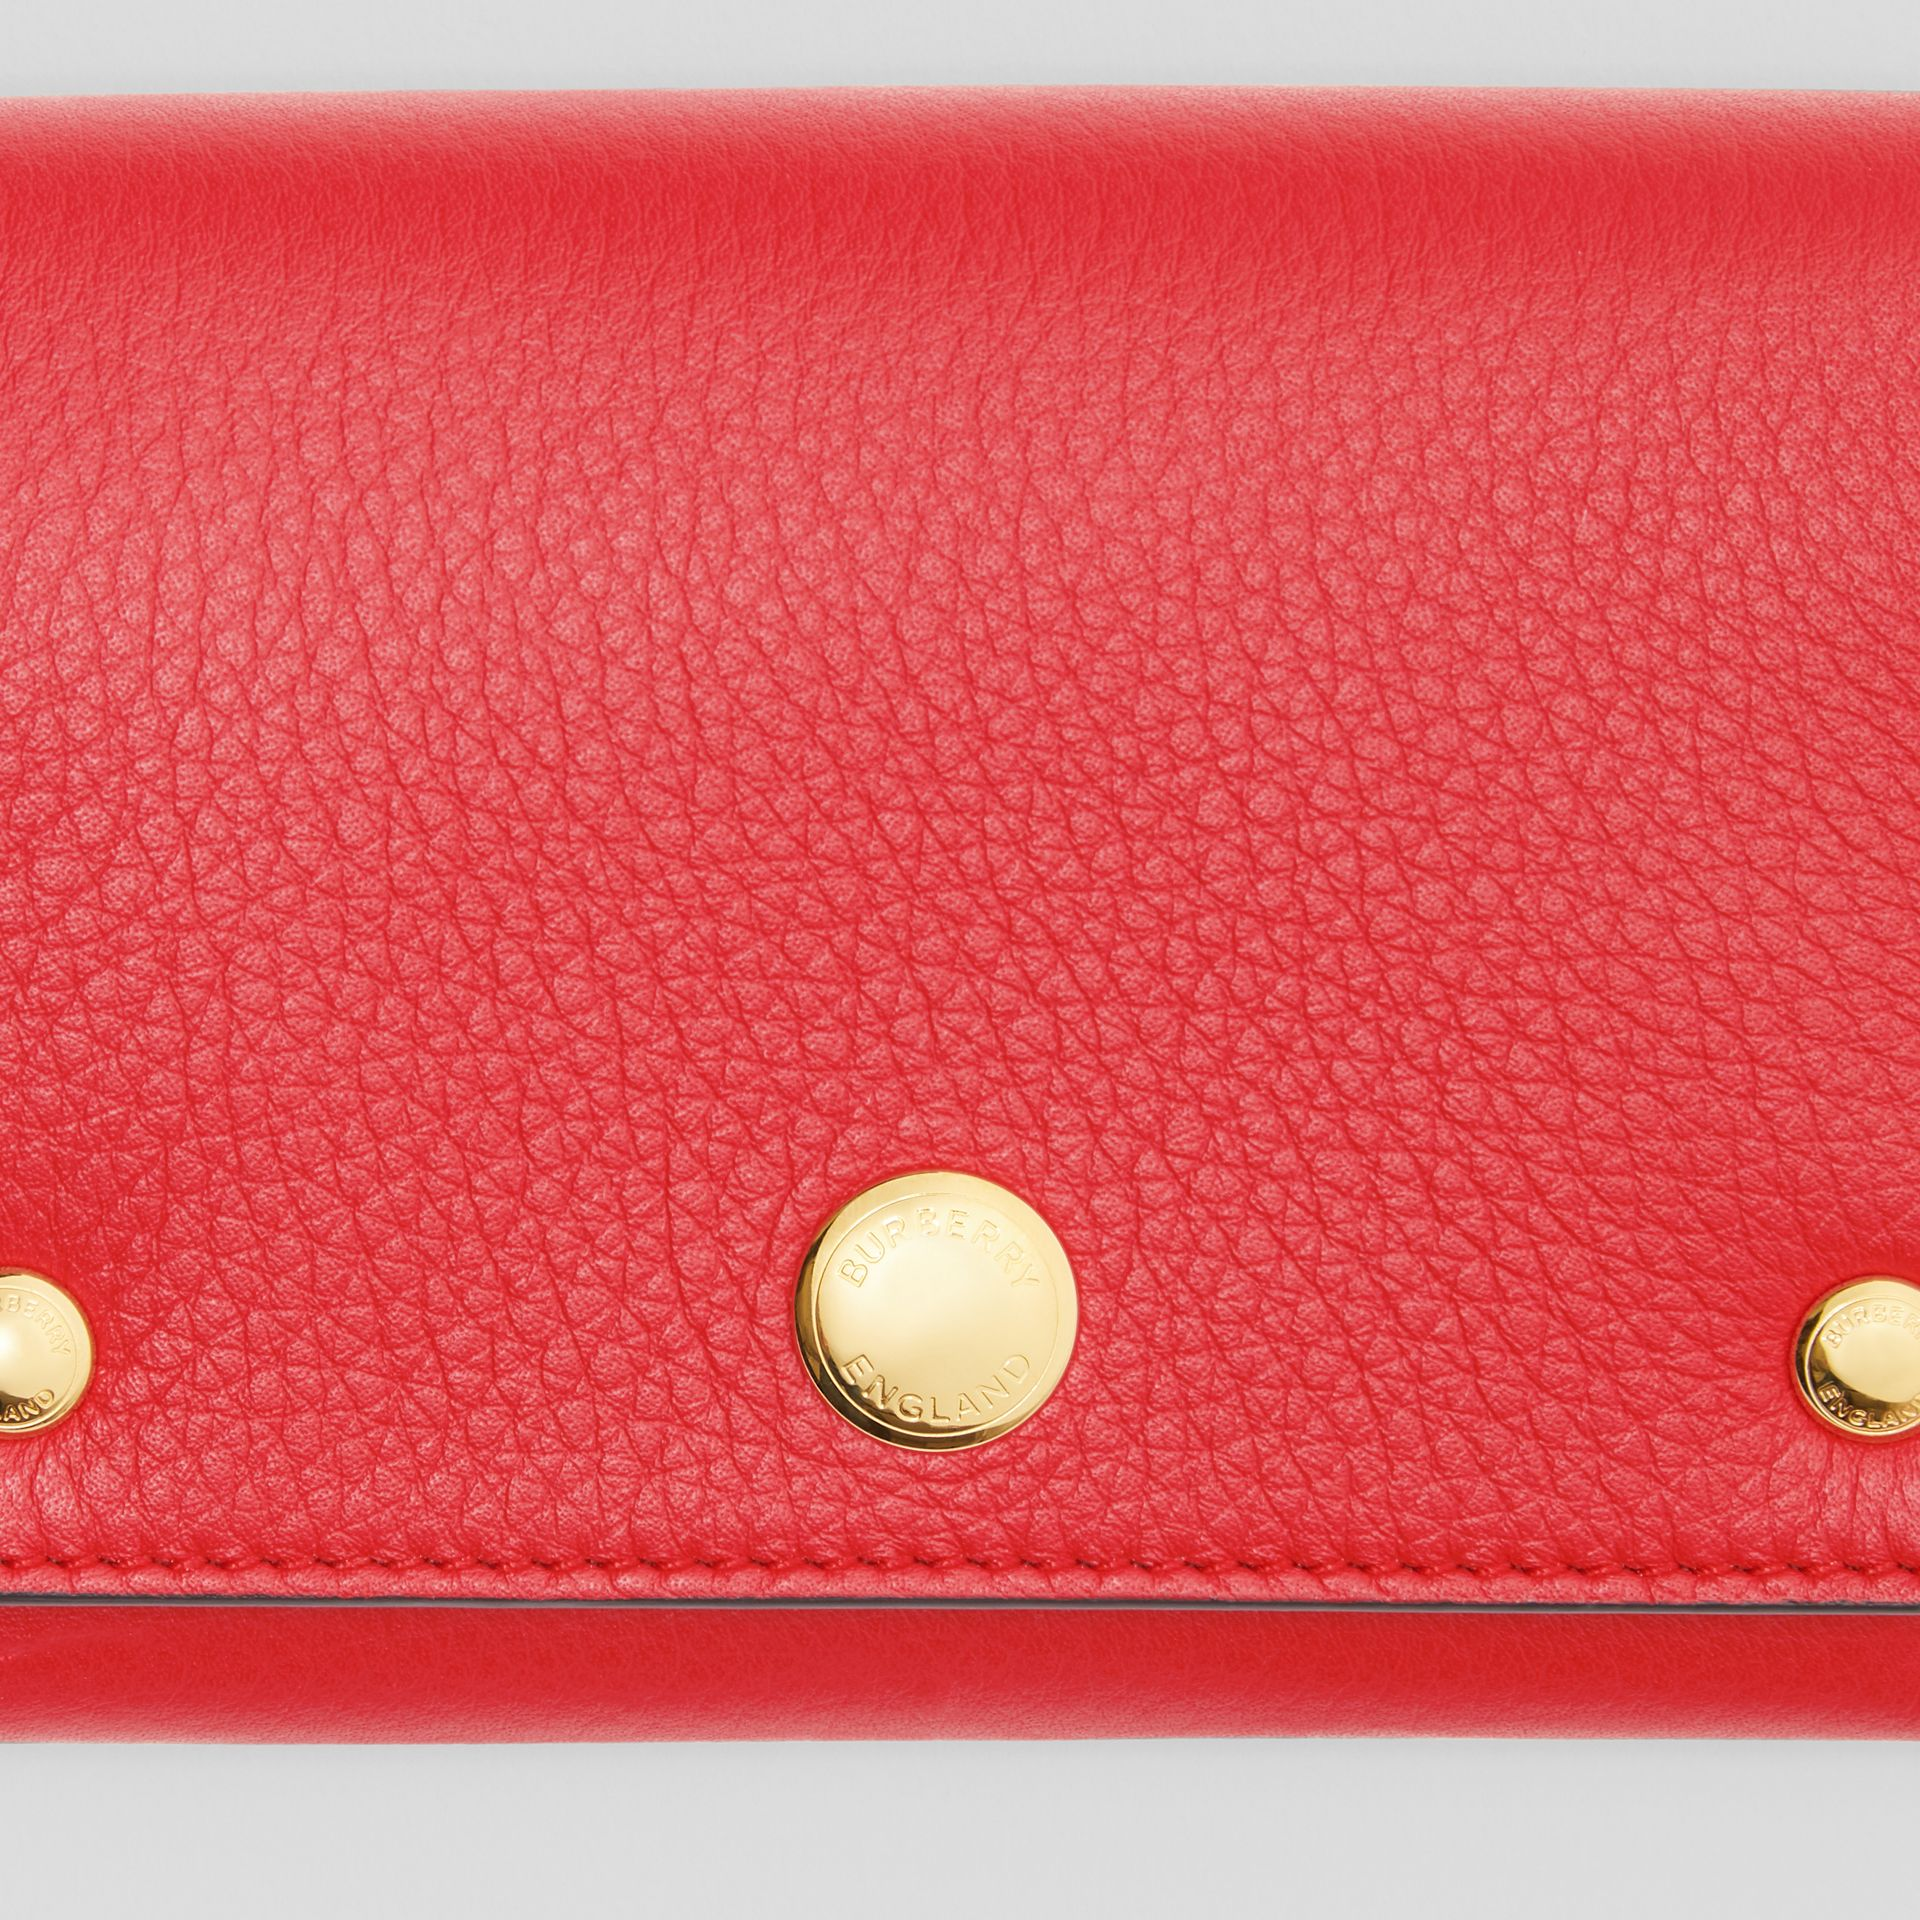 Triple Stud Leather Folding Wallet in Bright Military Red - Women | Burberry Hong Kong - gallery image 1